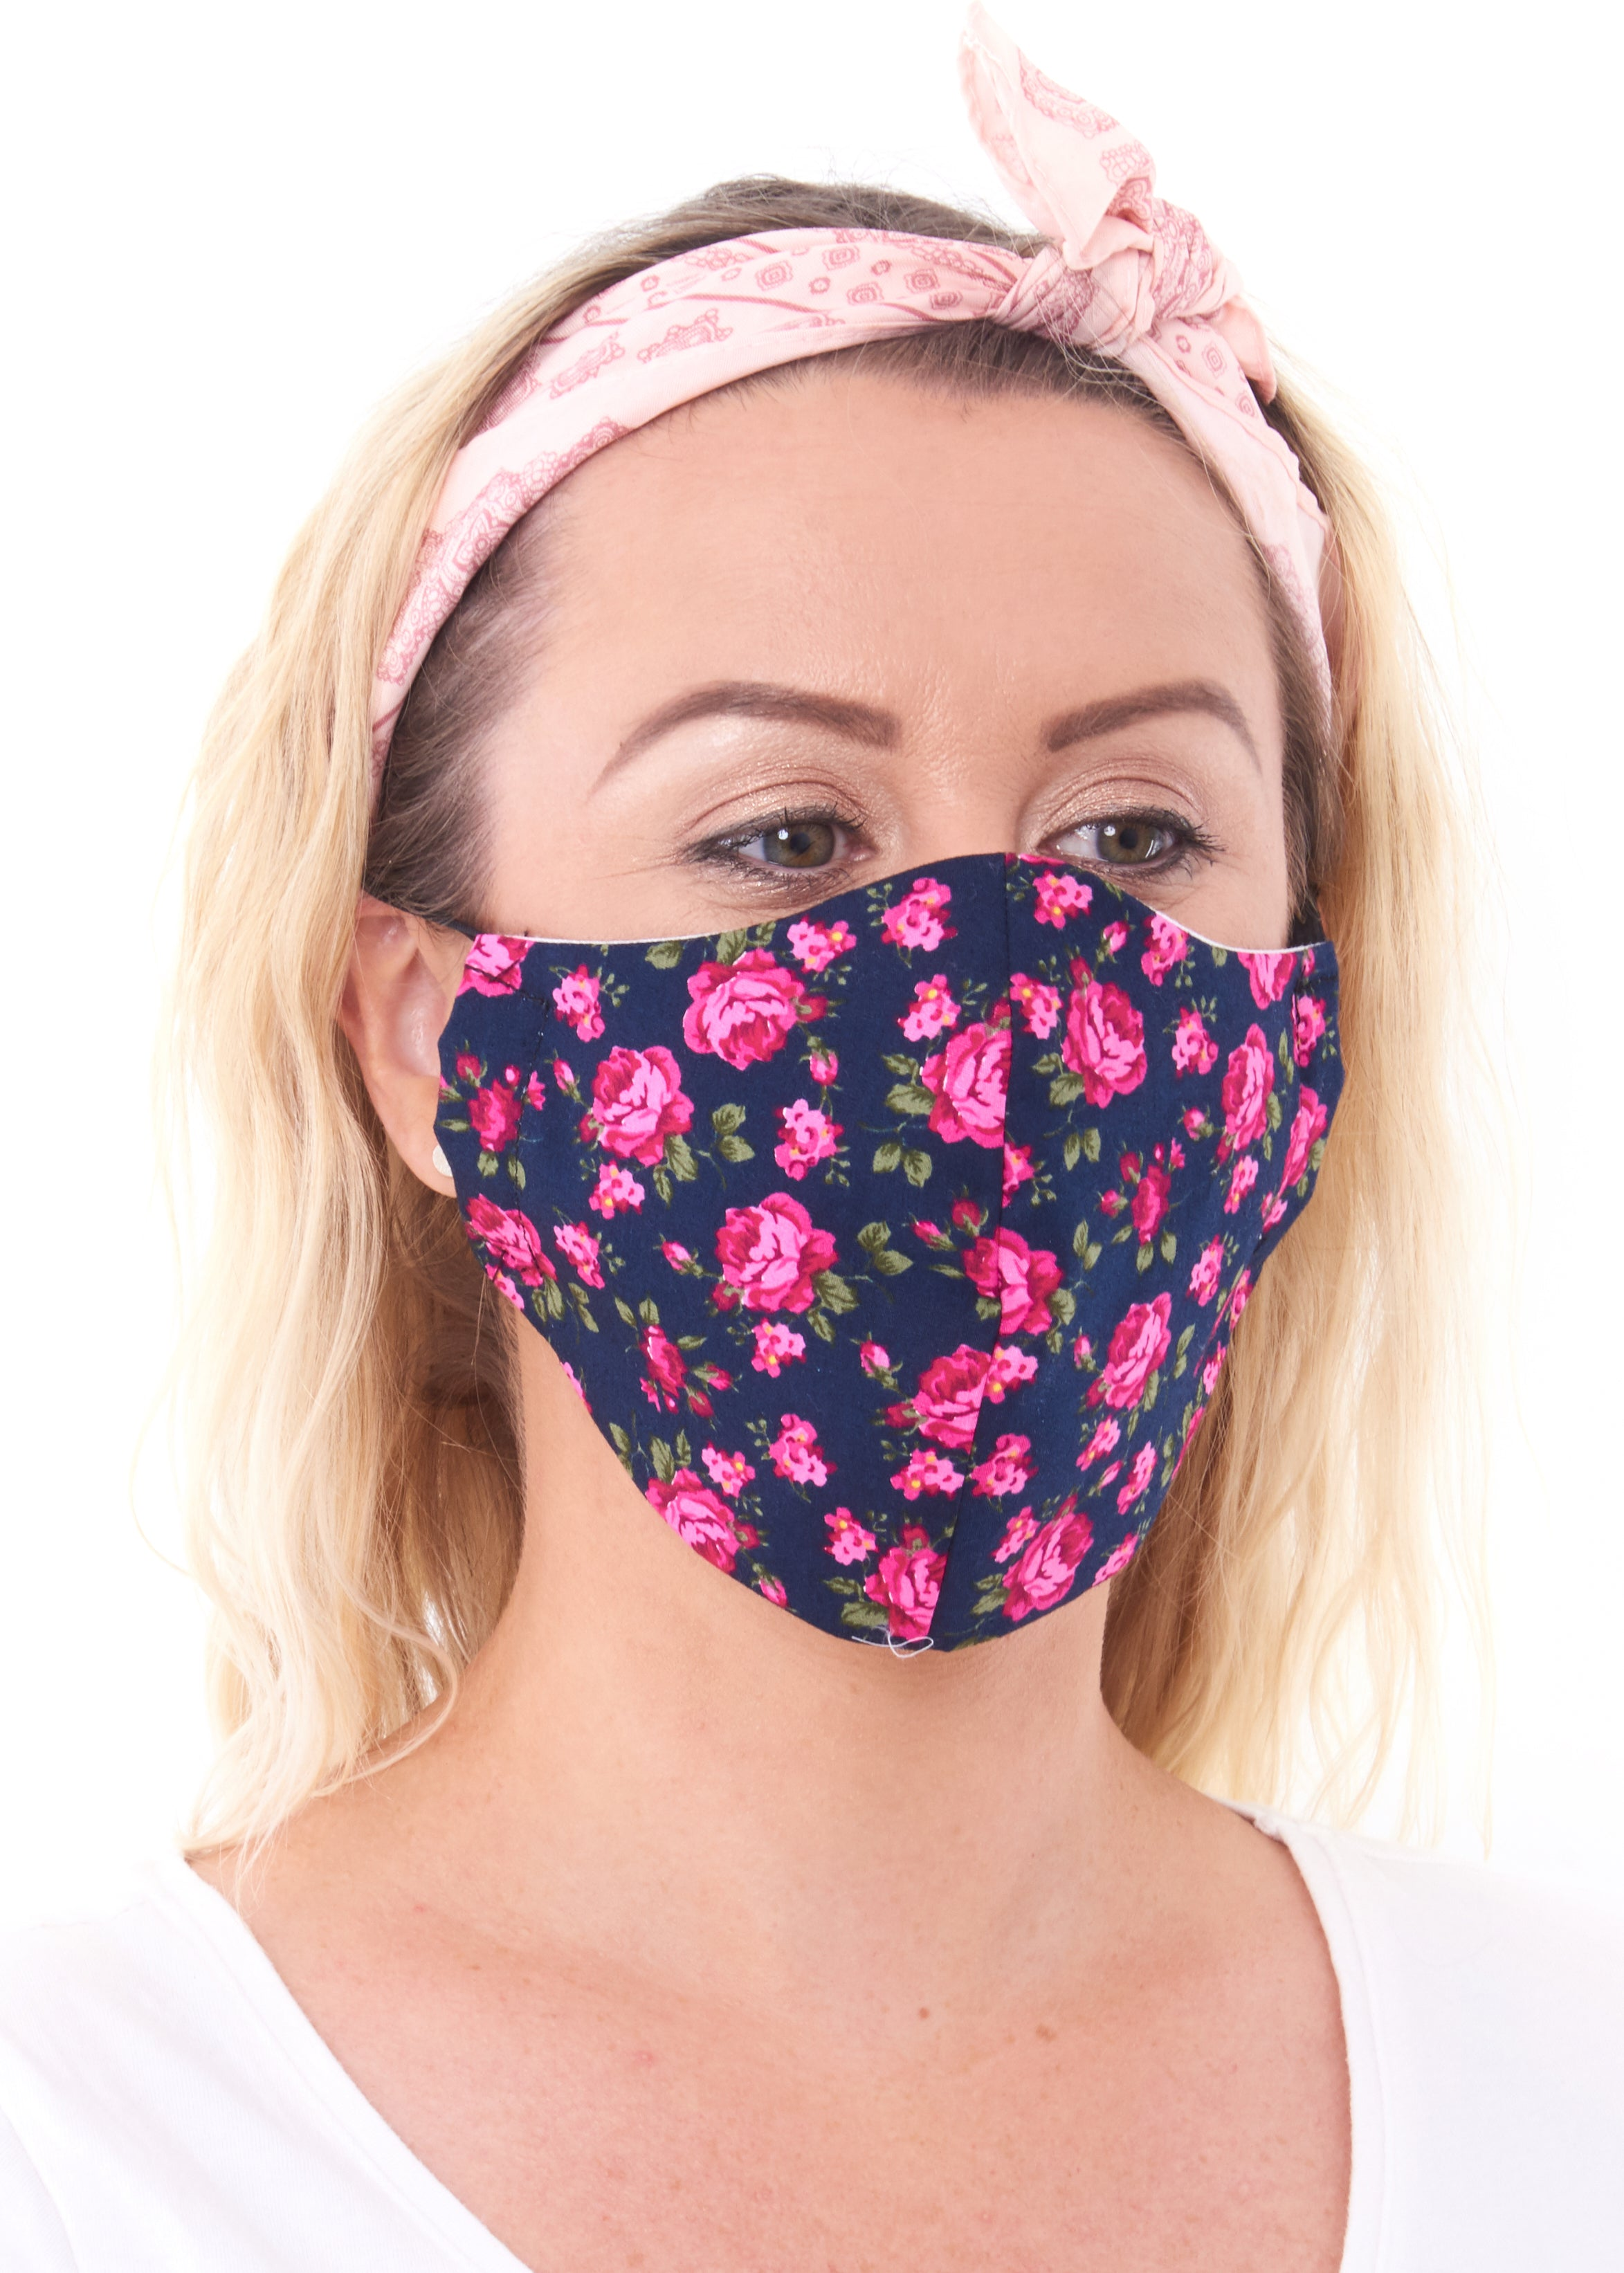 large rose flower charity face mask, charity masks